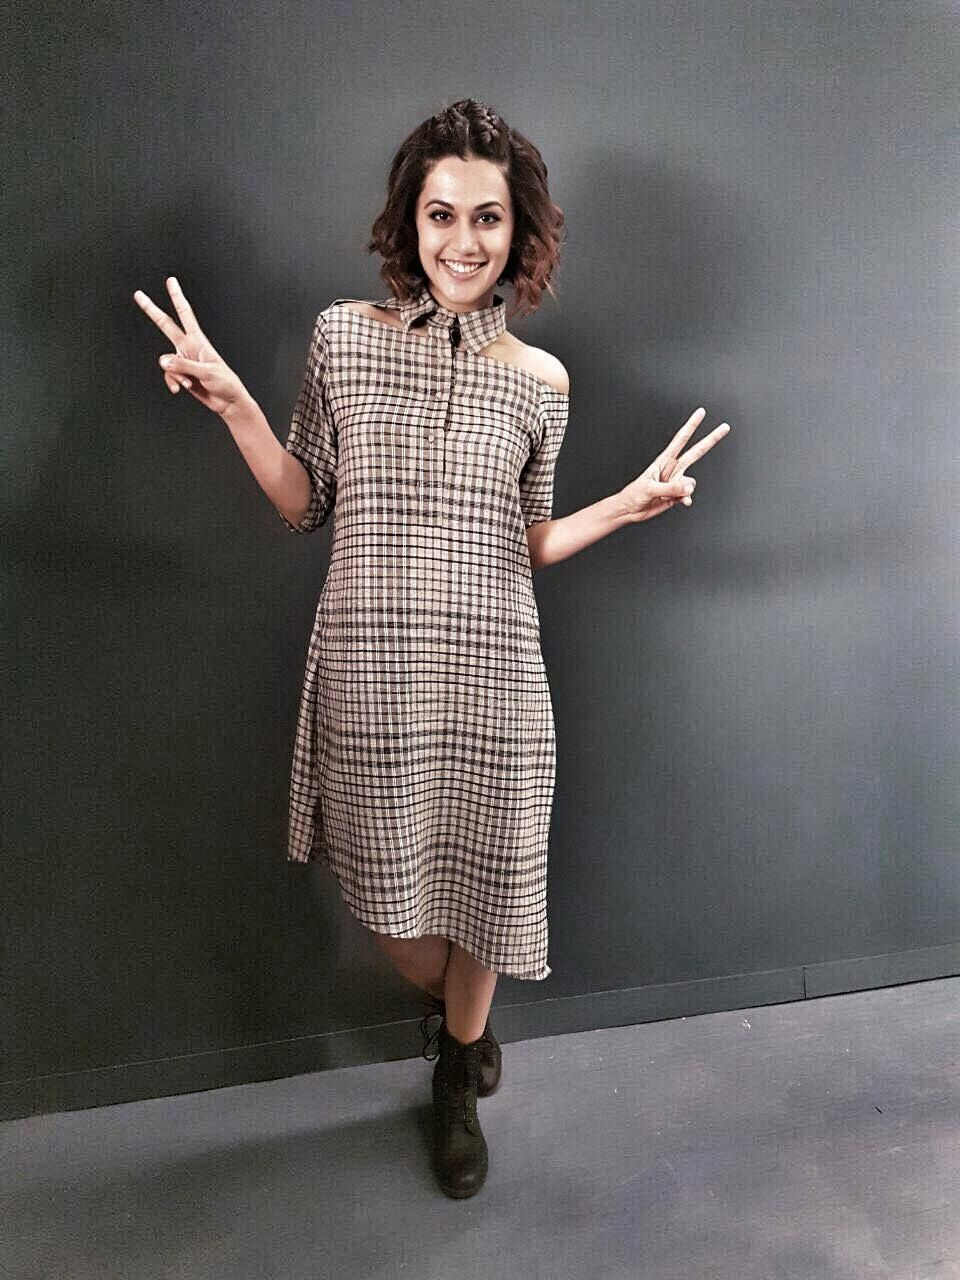 Taapsee pannu looking chic in a blueprint dress for the promotions taapsee pannu looking chic in a blueprint dress for the promotions of her movie pink malvernweather